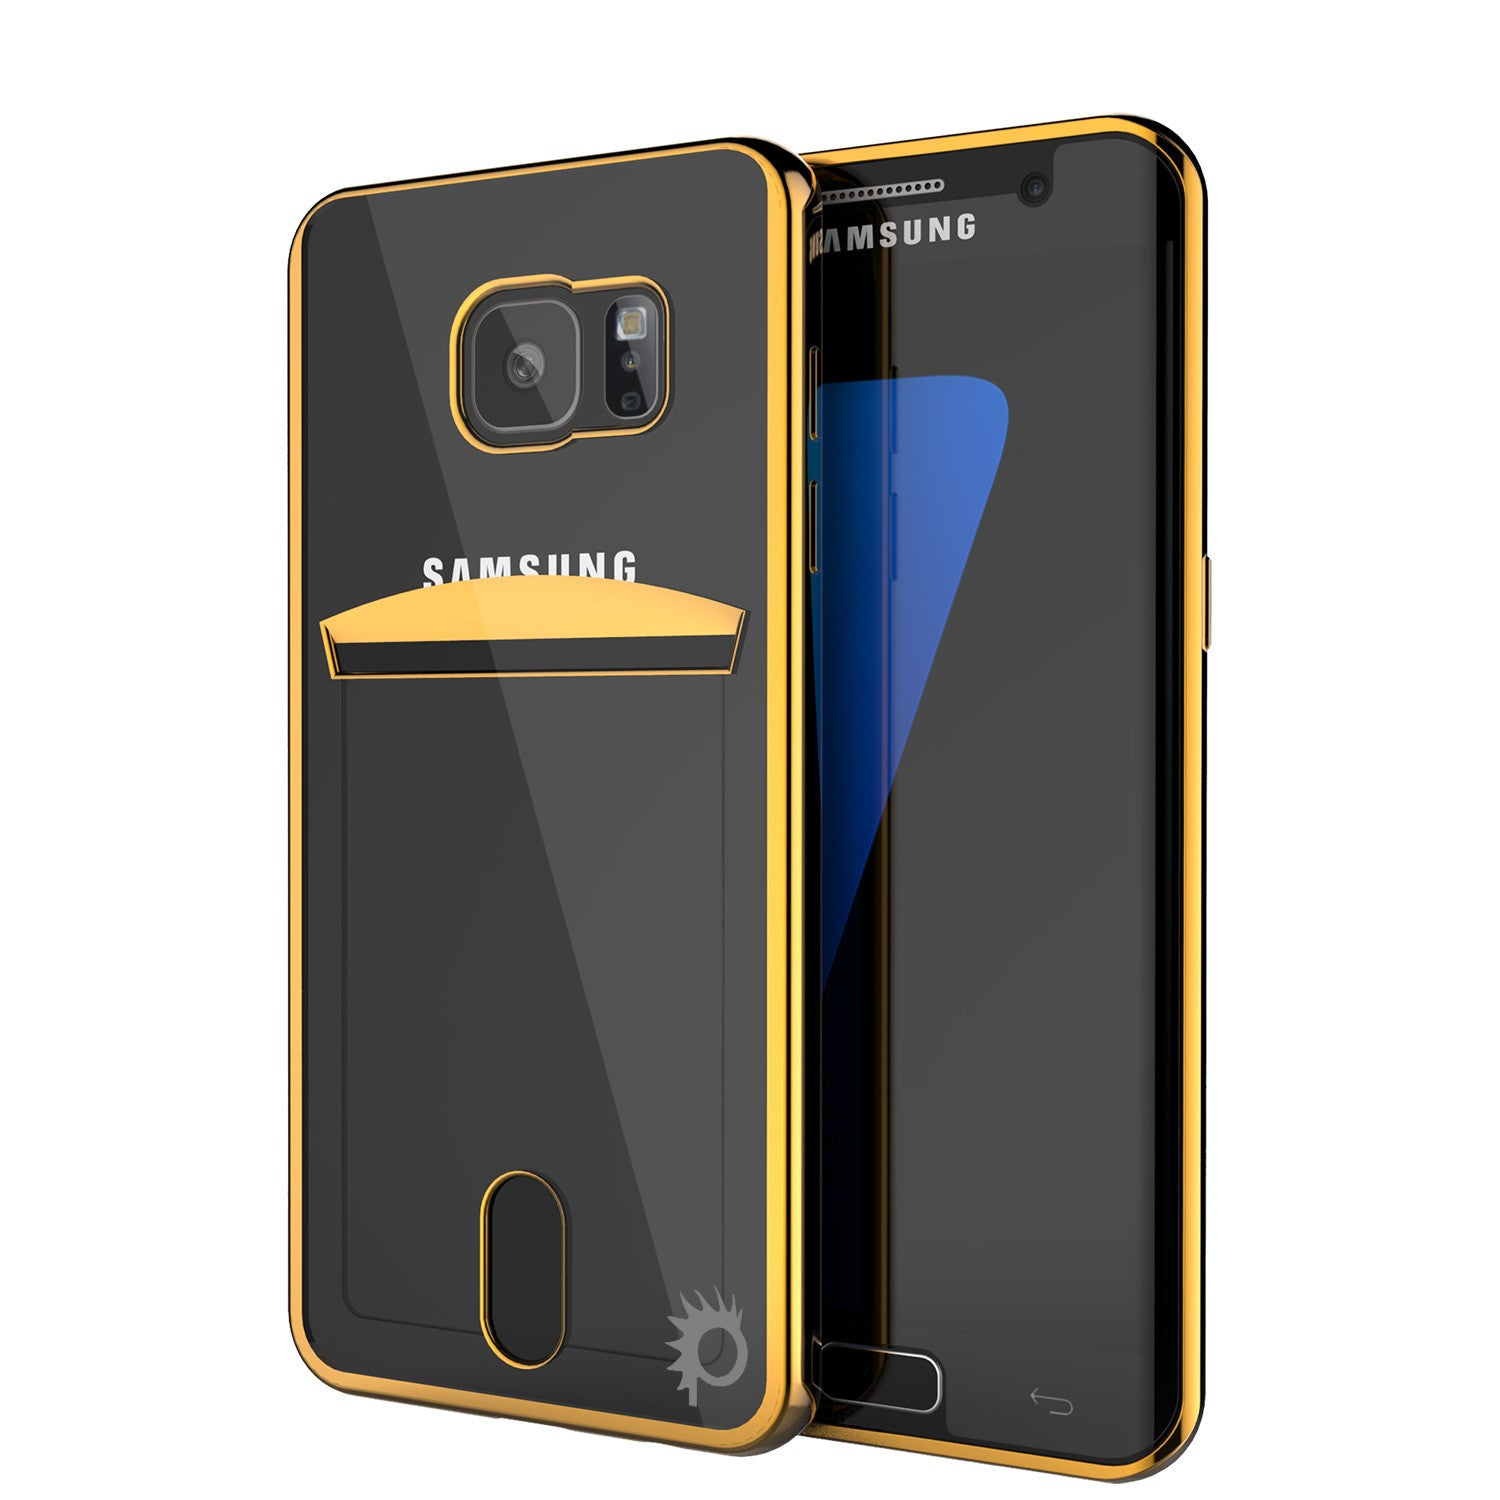 Galaxy S7 EDGE Case, PUNKCASE® LUCID Gold Series | Card Slot | SHIELD Screen Protector | Ultra fit